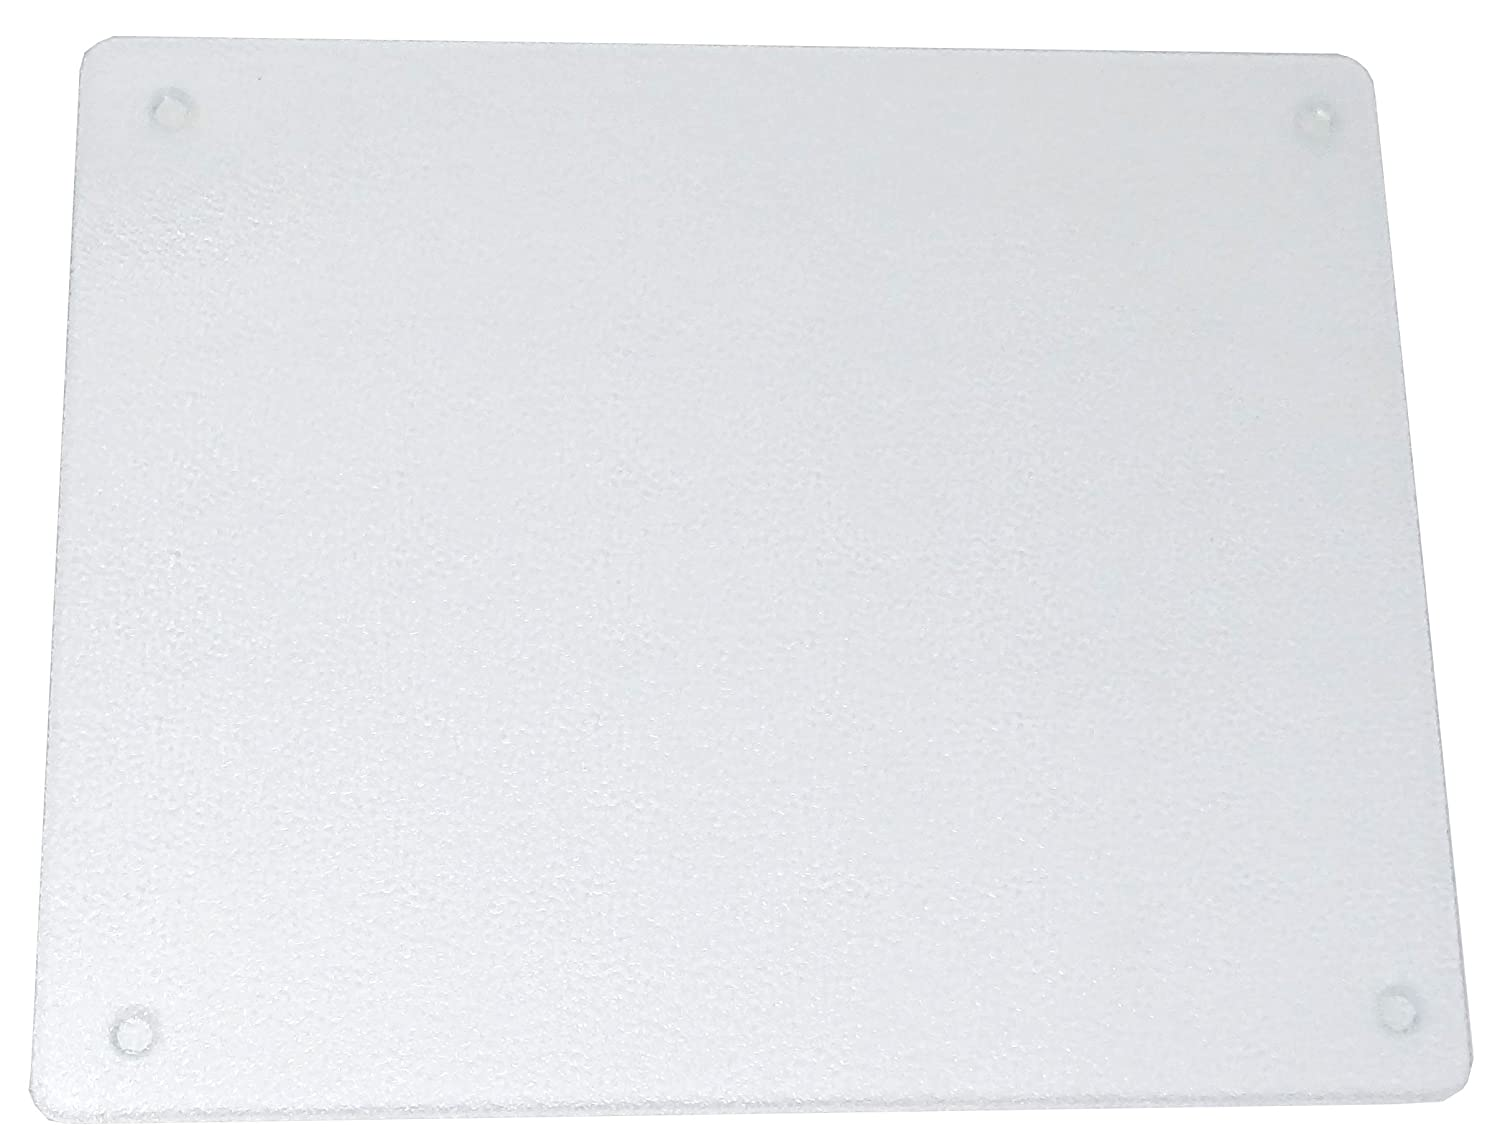 Surface Saver Vance 20 X 16 inch Clear Tempered Glass Cutting Board, 82016C, 20 X 16-Inch